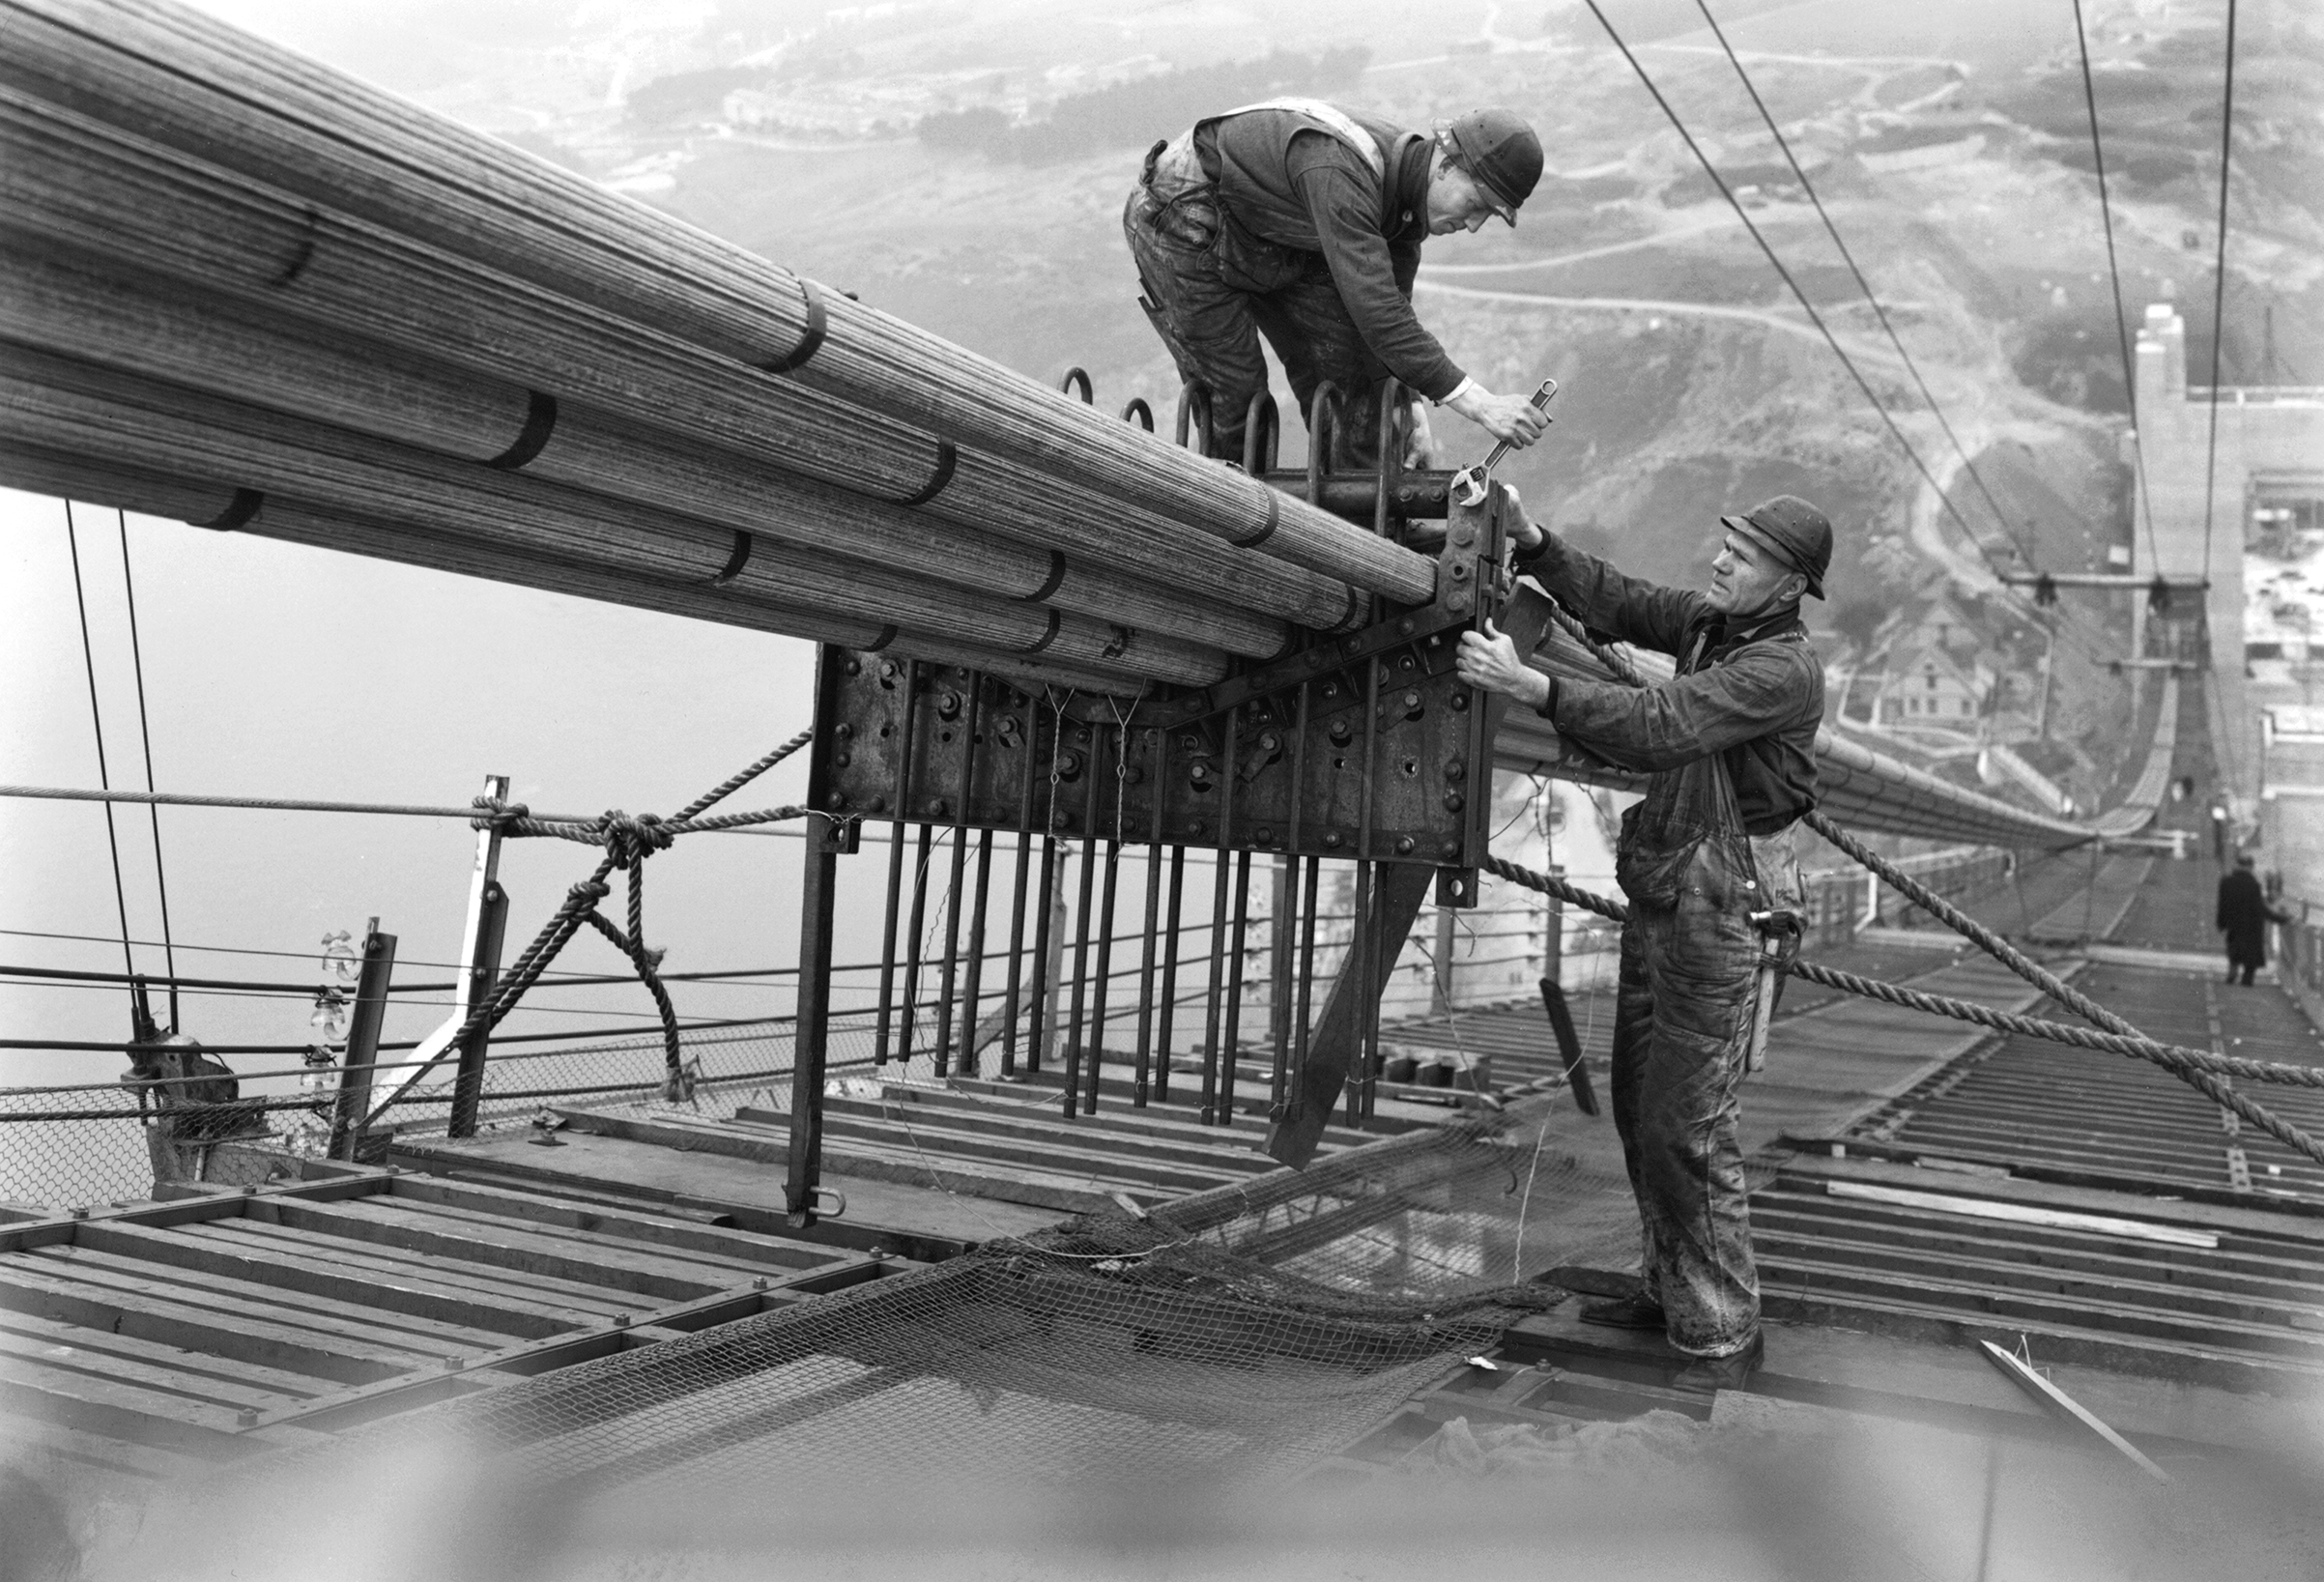 Workers on the catwalks bundling the cables during the construction of the cables of the Golden Gate Bridge, San Francisco, California, circa 1936.